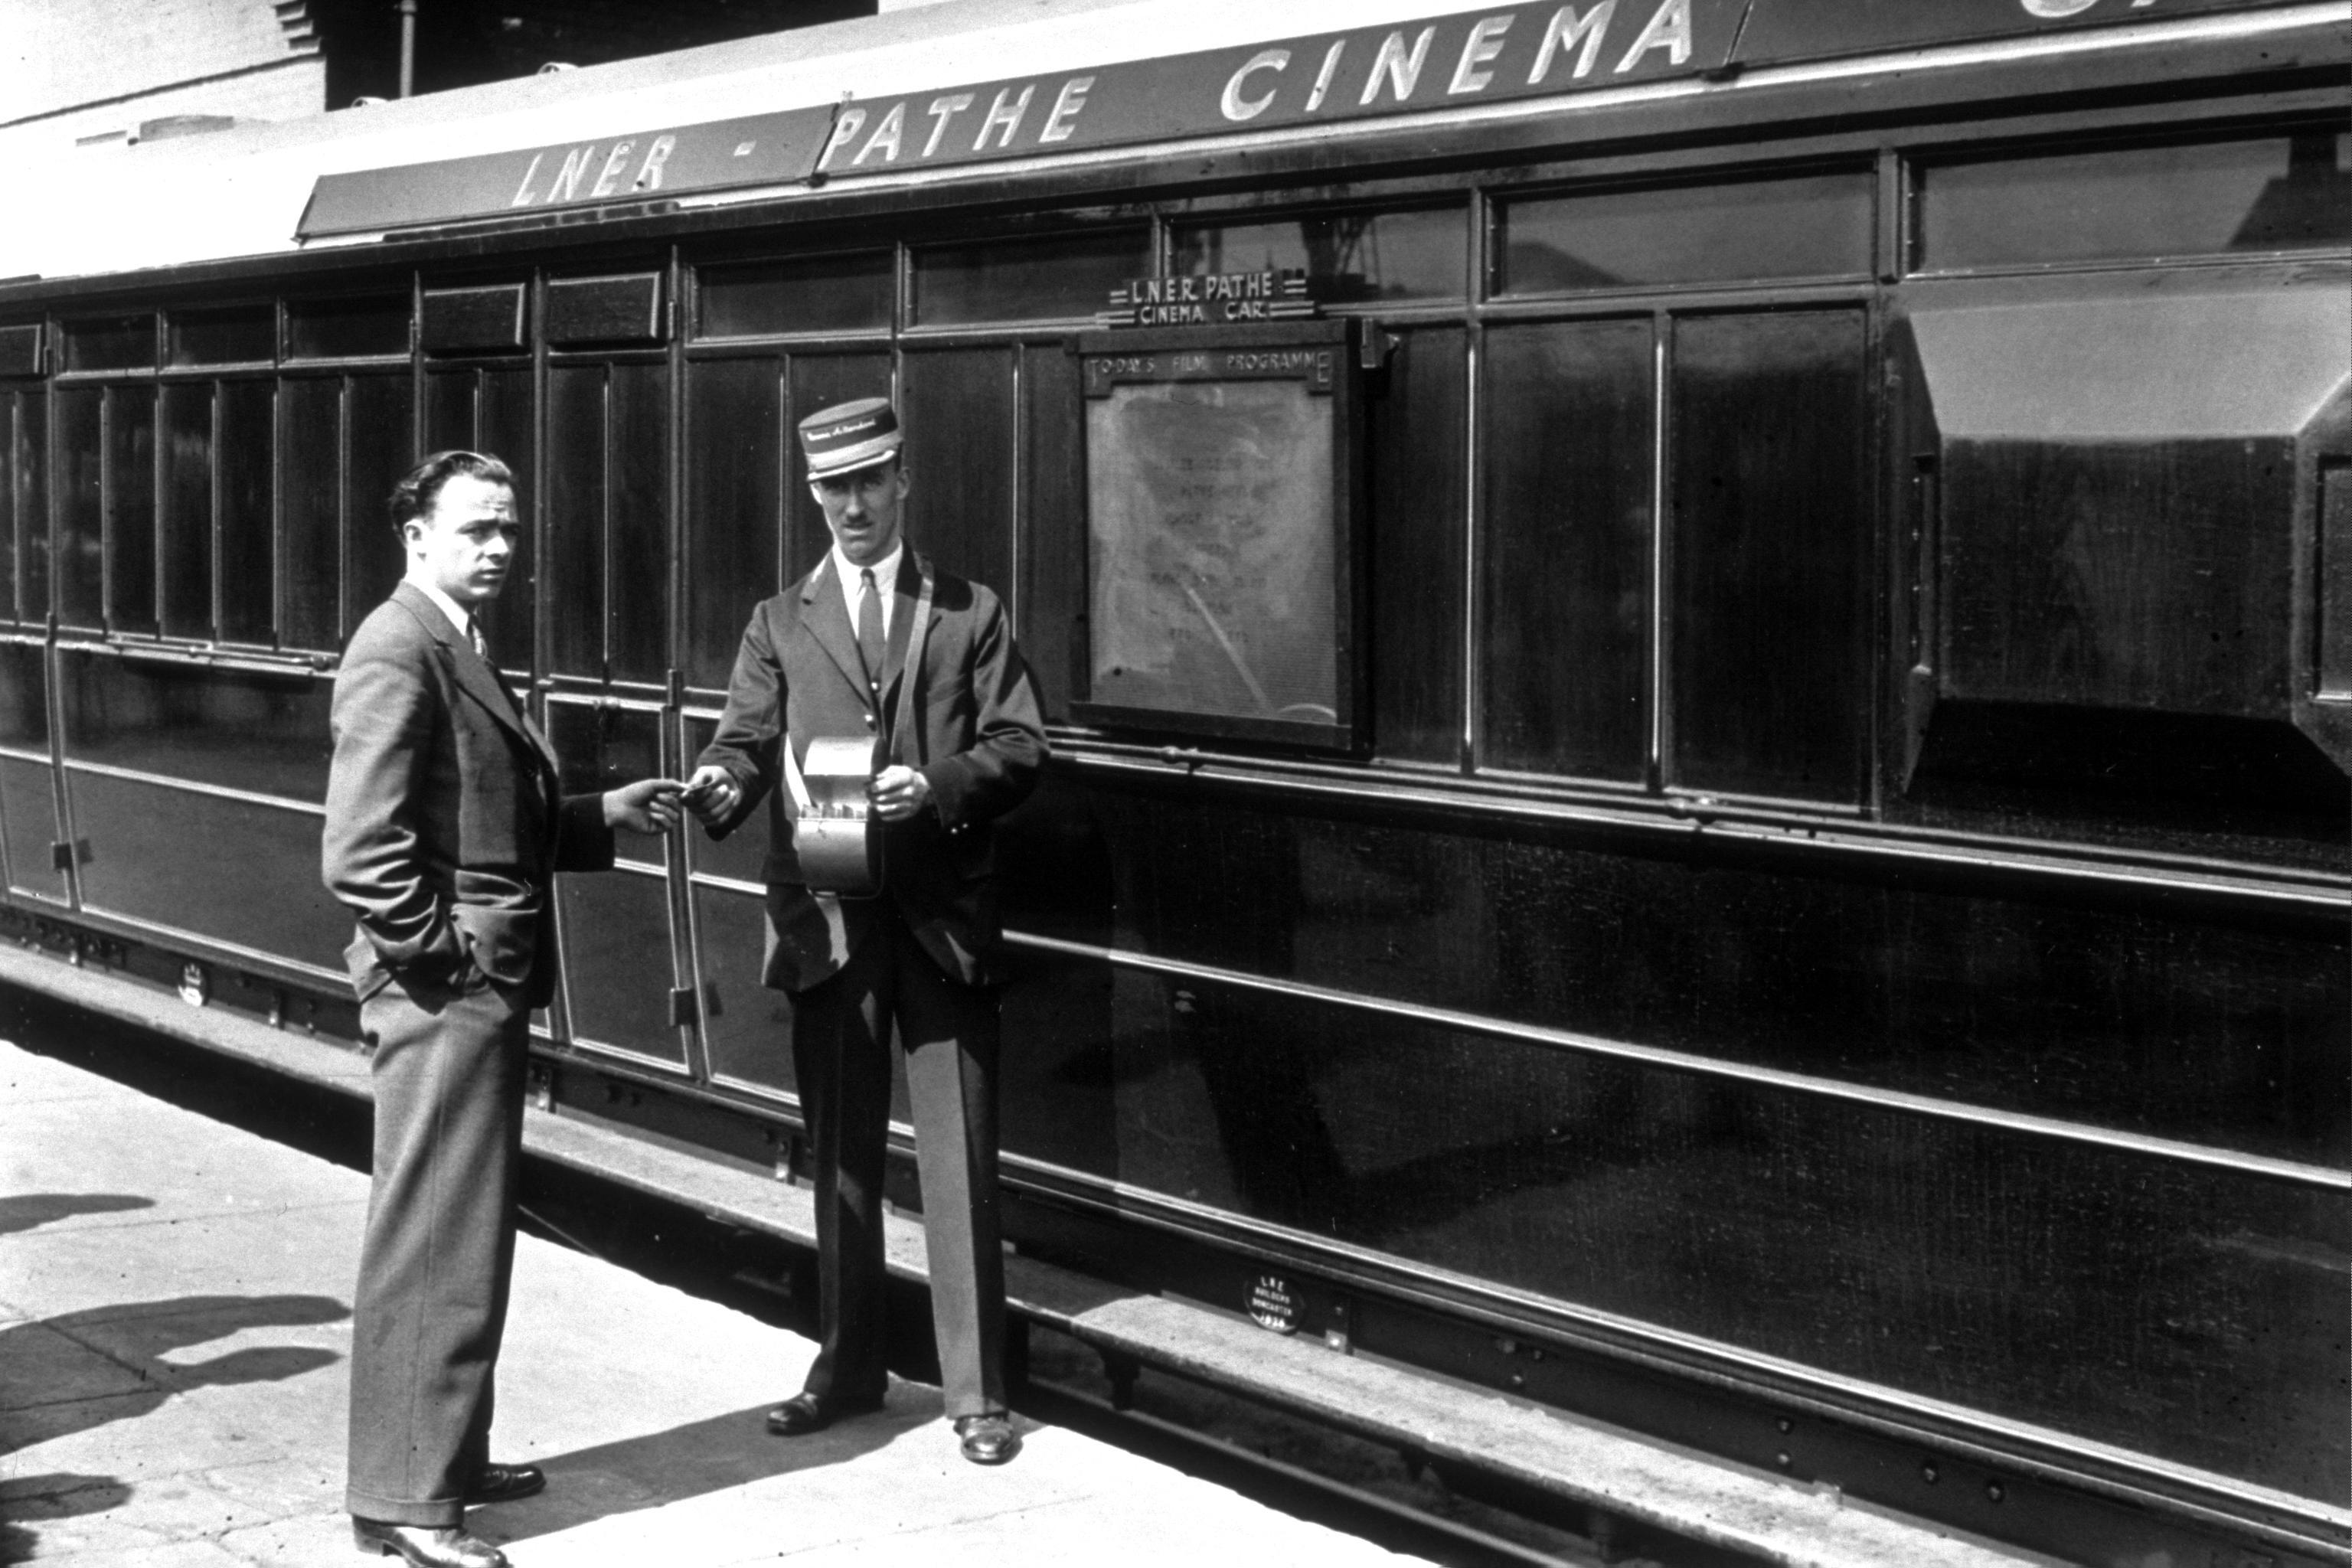 1938: A cinema attendant giving a ticket to a passenger for the Pathe cinema car, which ran on LNER trains. (Photo by Topical Press Agency/Getty Images)